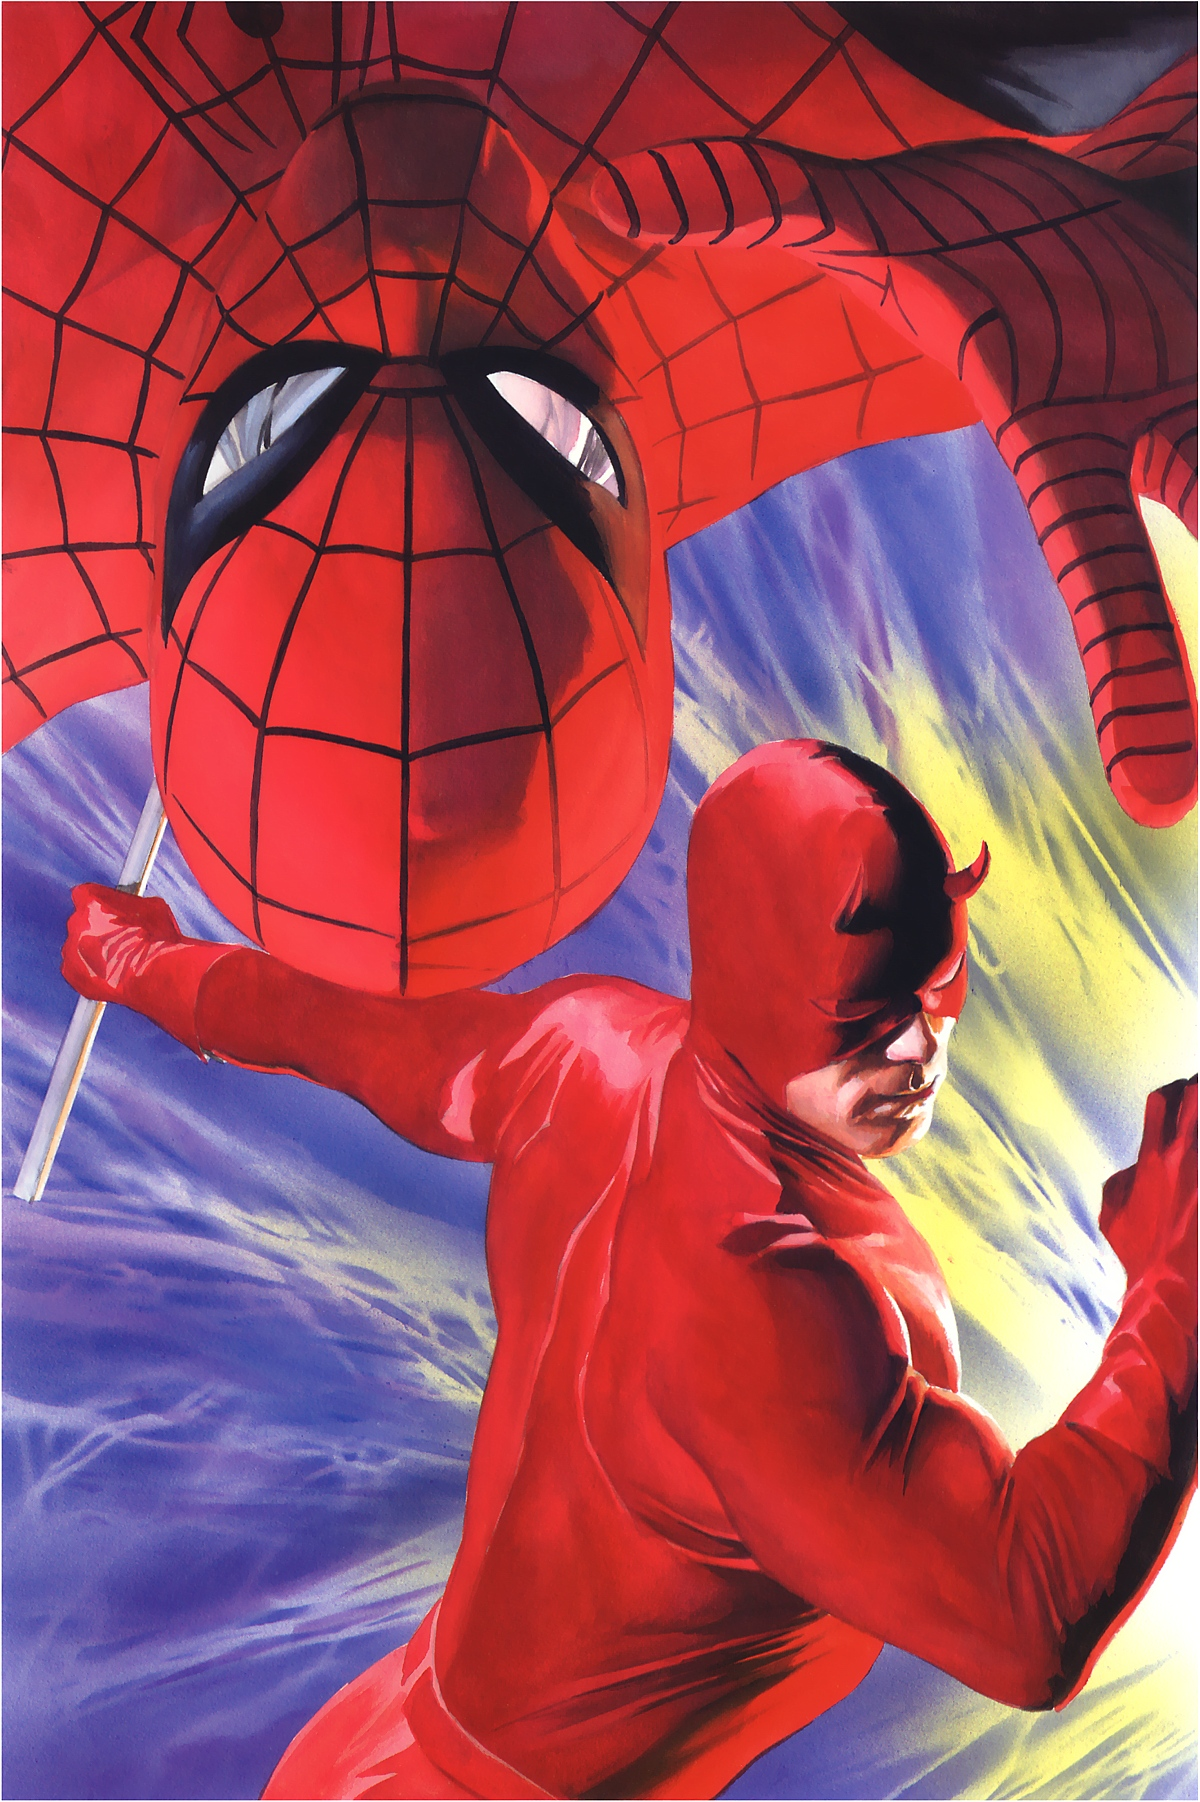 Daredevil & Spider-Man